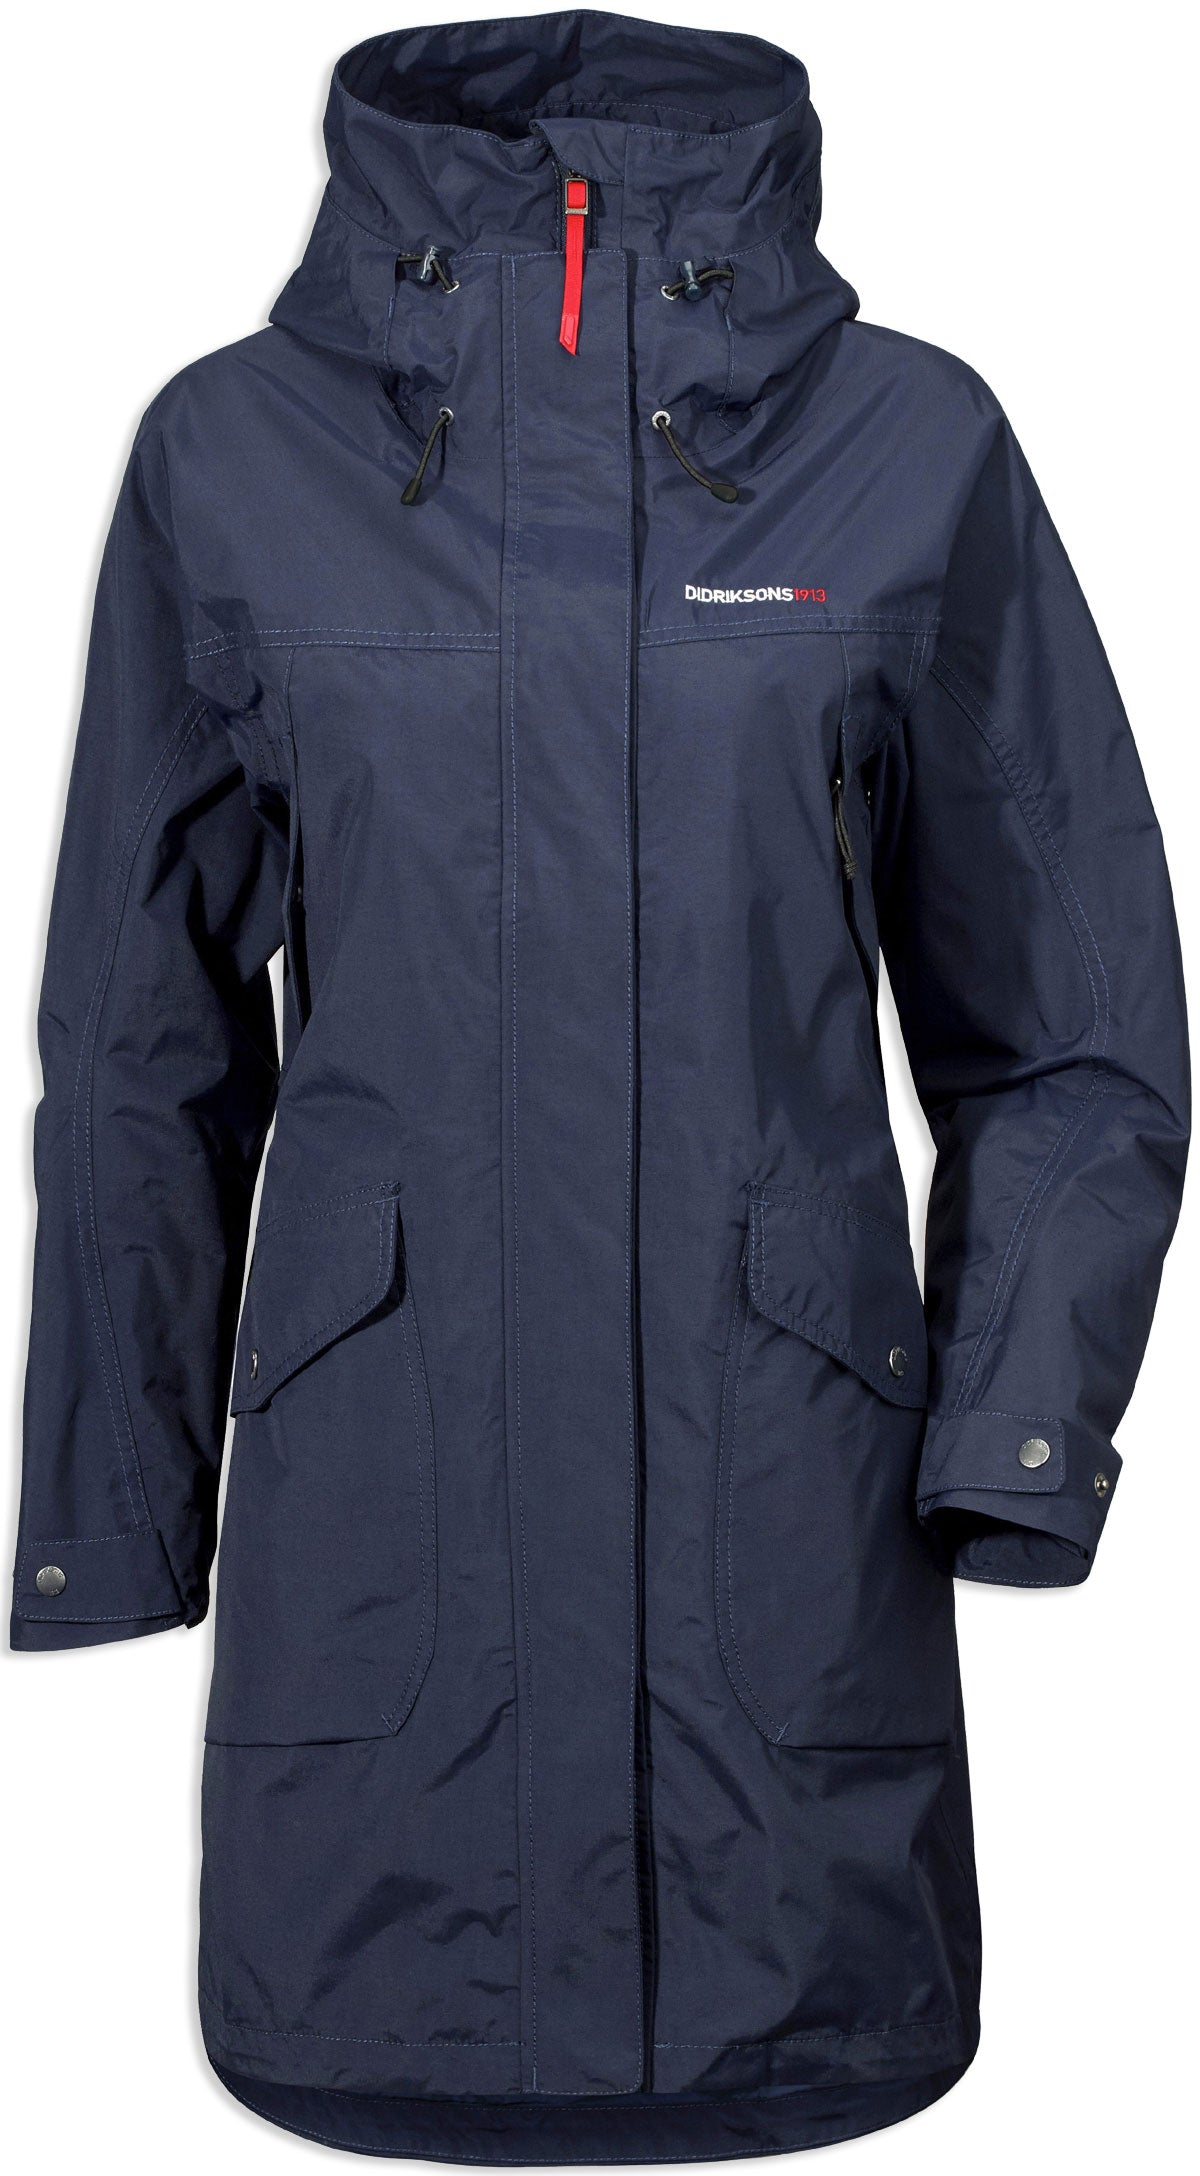 navy Didriksons Ladies Thelma Waterproof parka coat